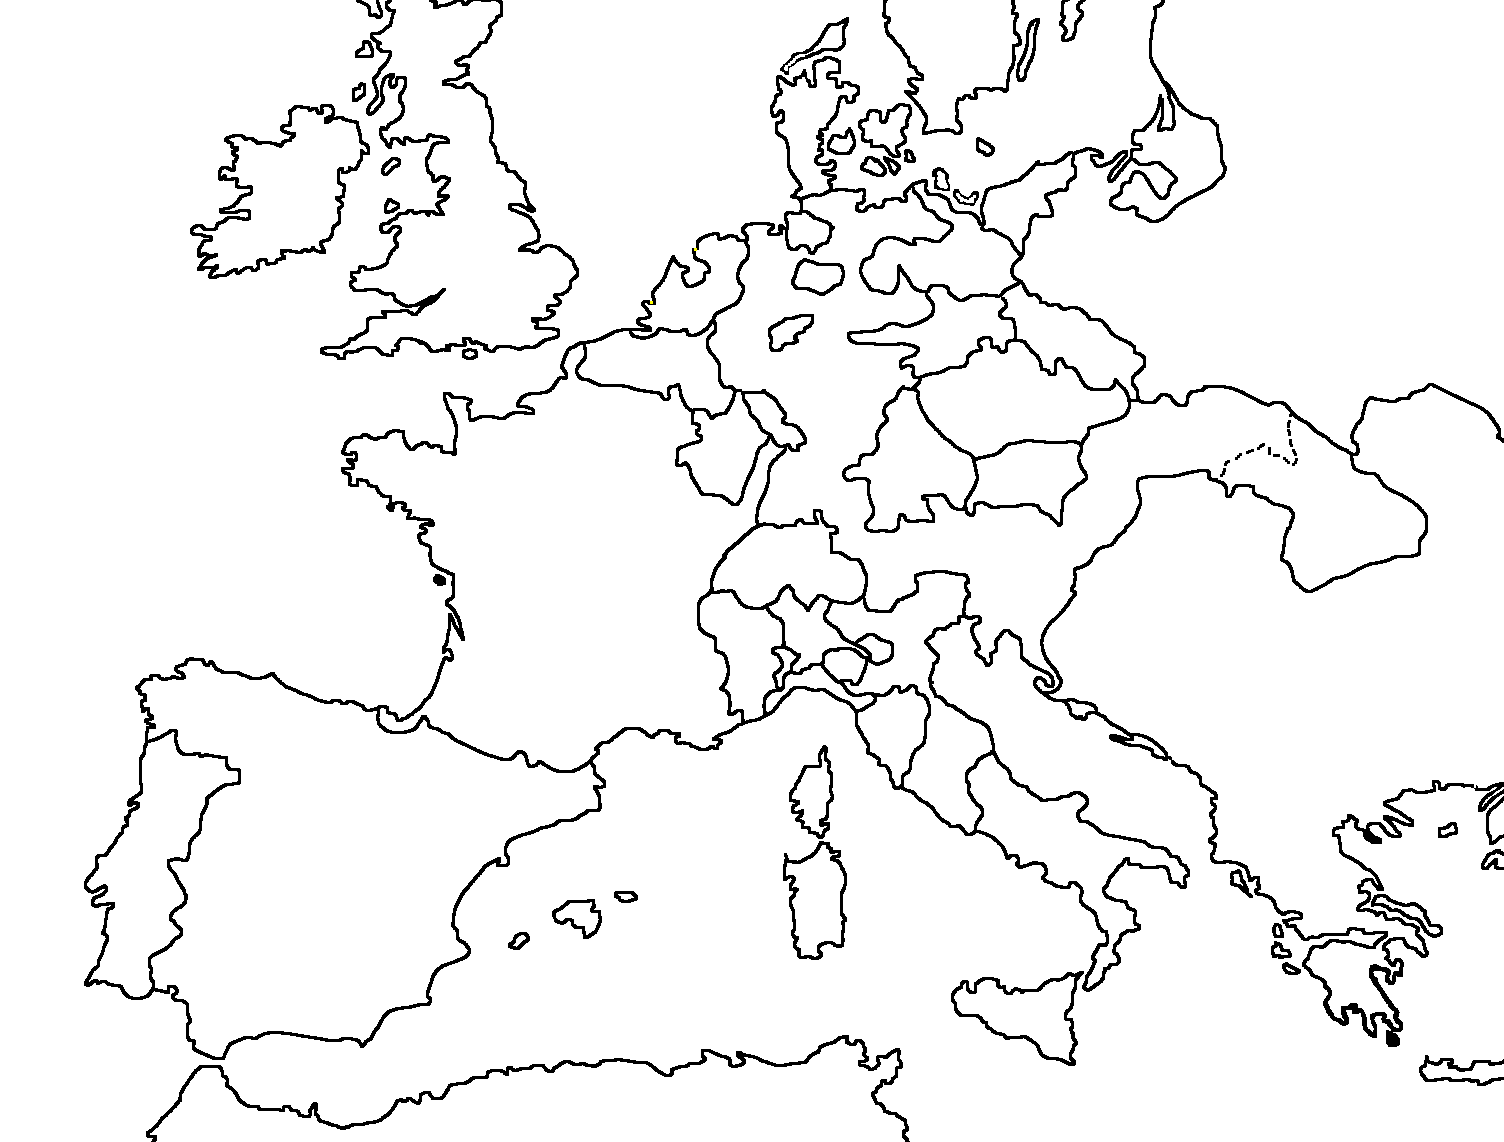 Carte Europe Png.Carte Europe Vierge Png 4 Png Image